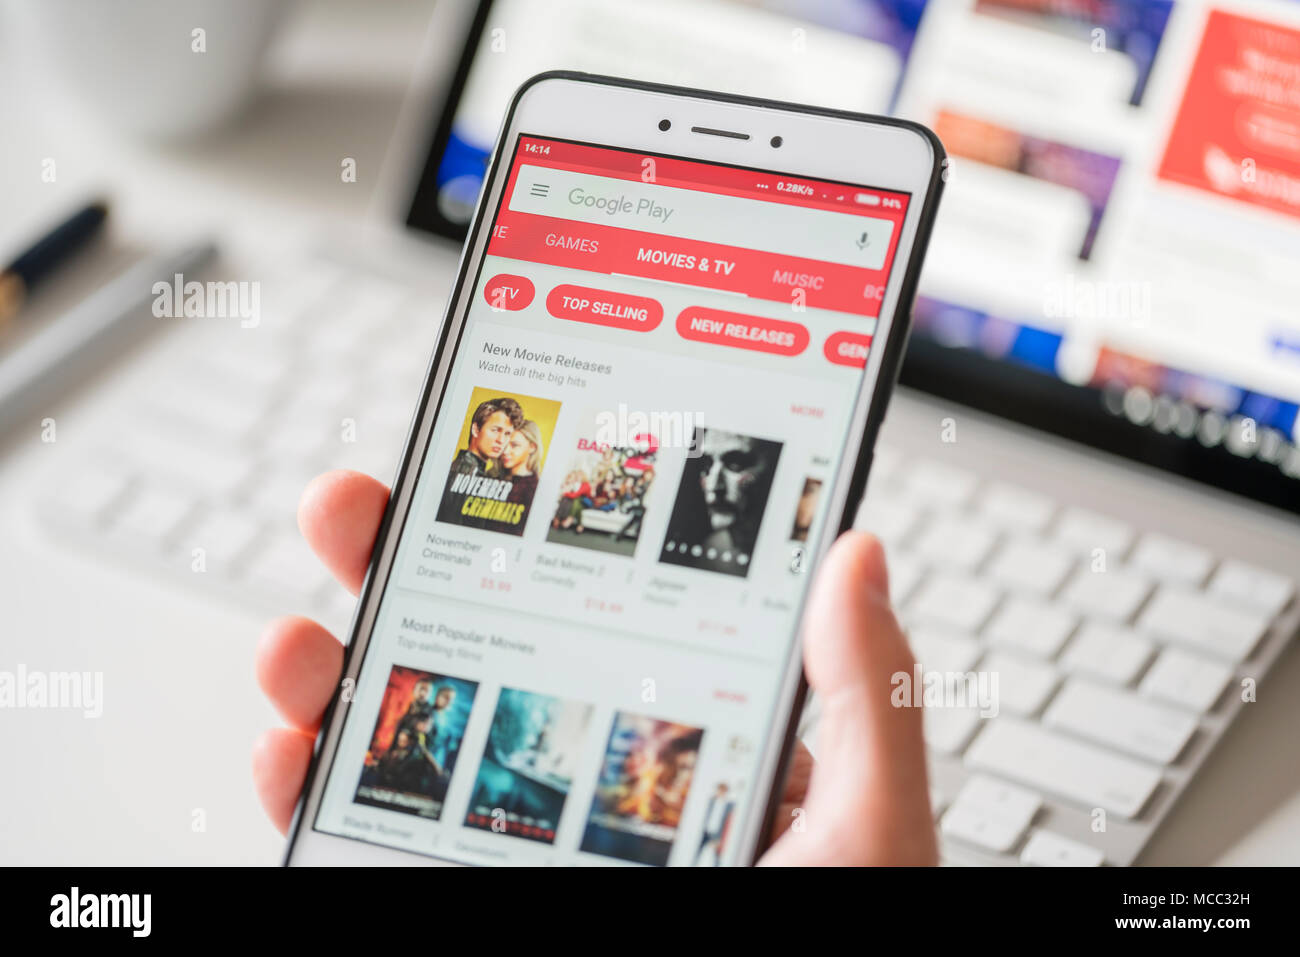 Melbourne, Australia - Feb 2, 2018: Browsing the movies and TV programmes in Google Play Store on a smartphone - Stock Image